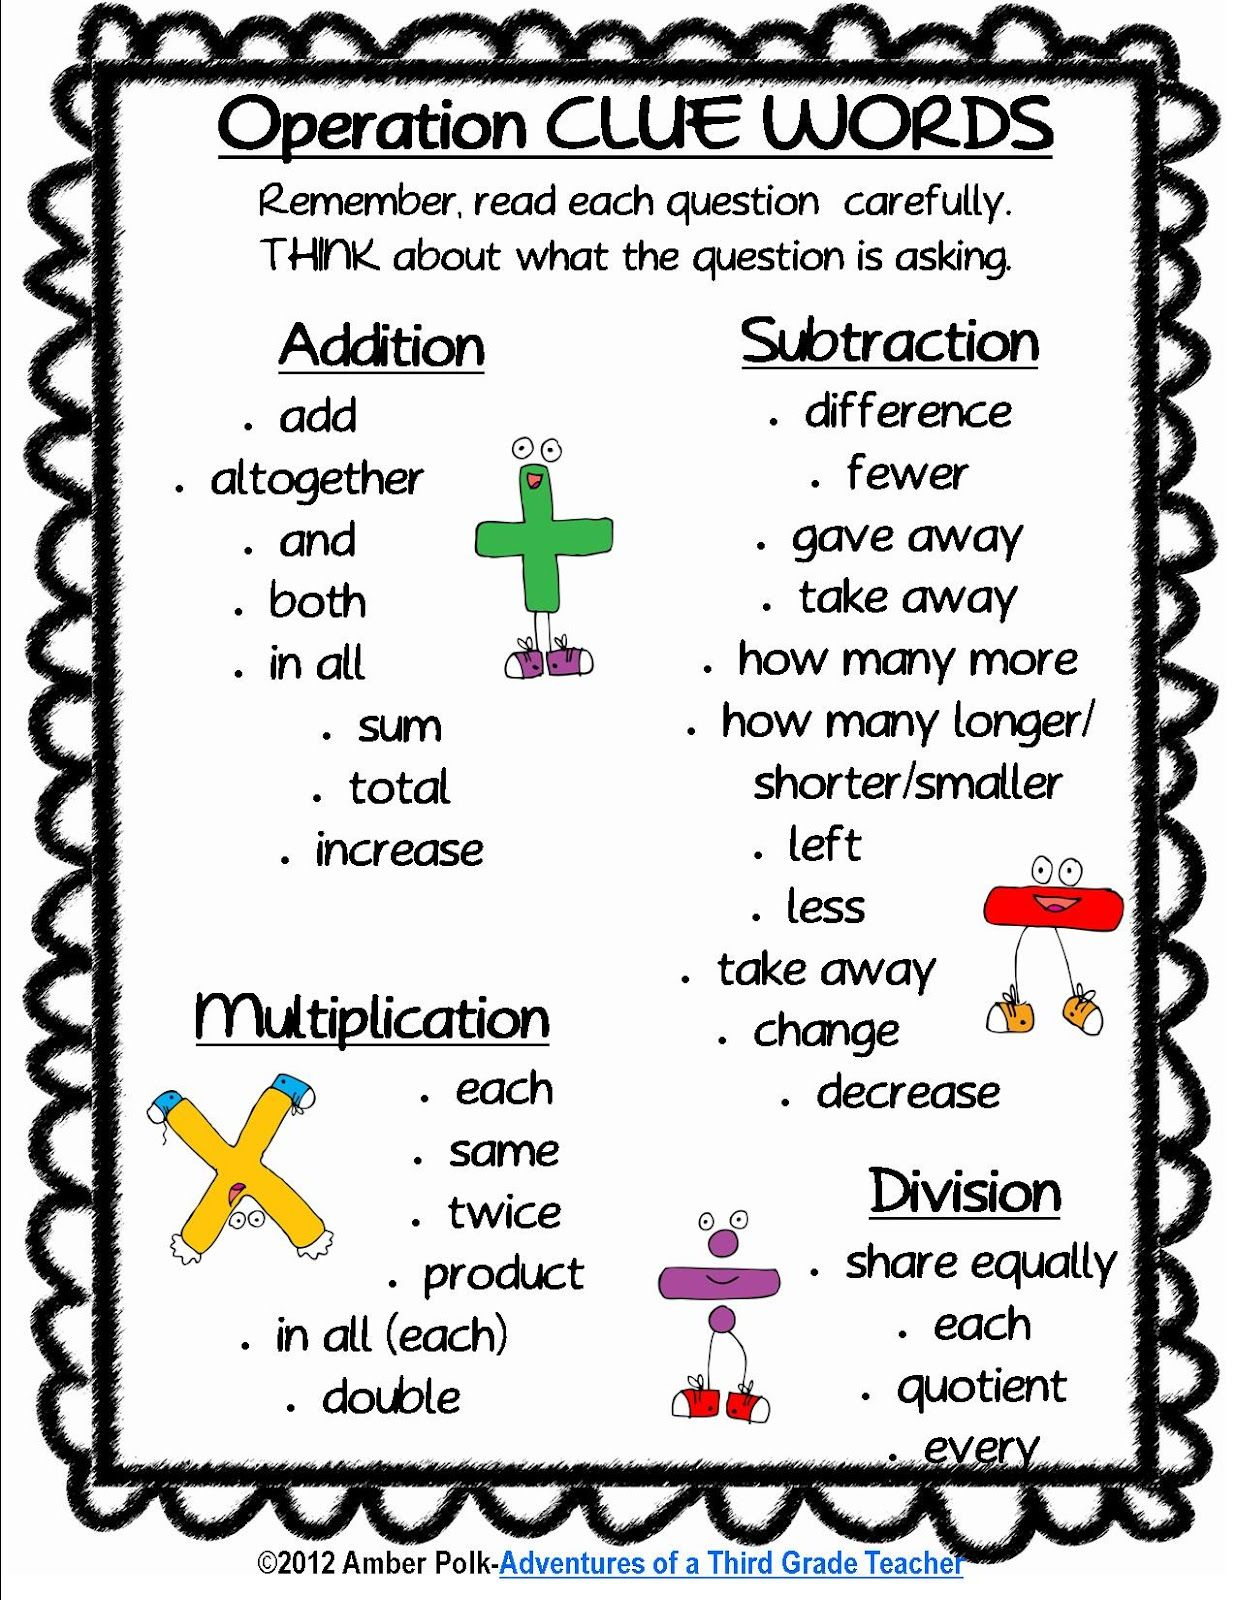 Math Operation Clue Words (including a clue word cut